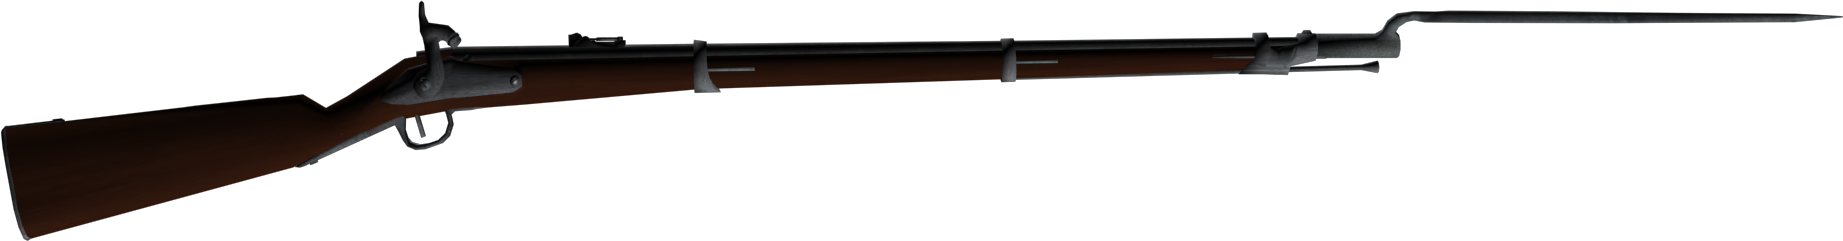 musket_m1857.png